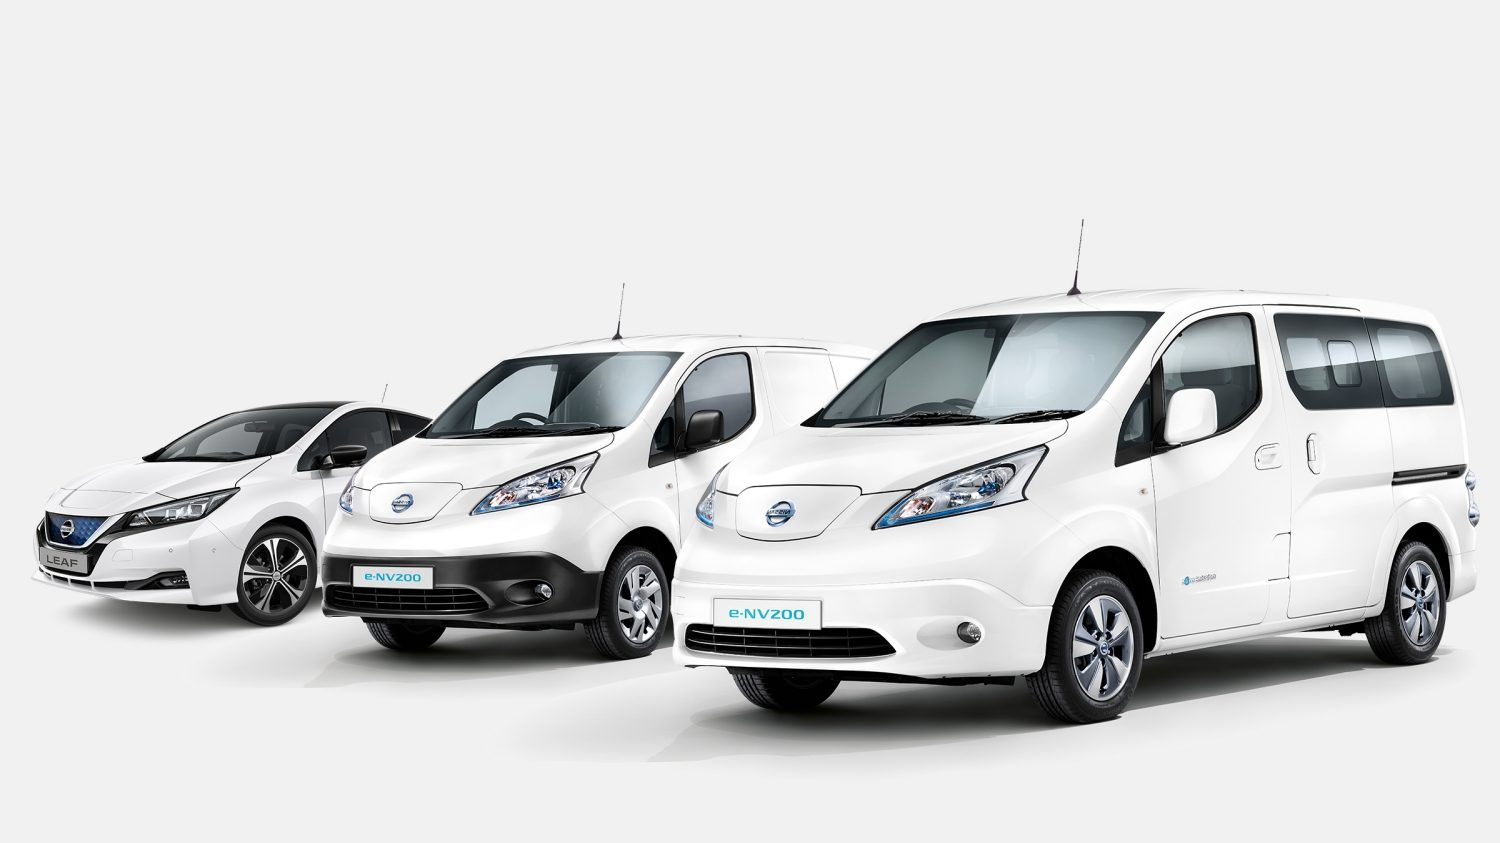 New Nissan e-NV200 EVALIA electric vehicles range